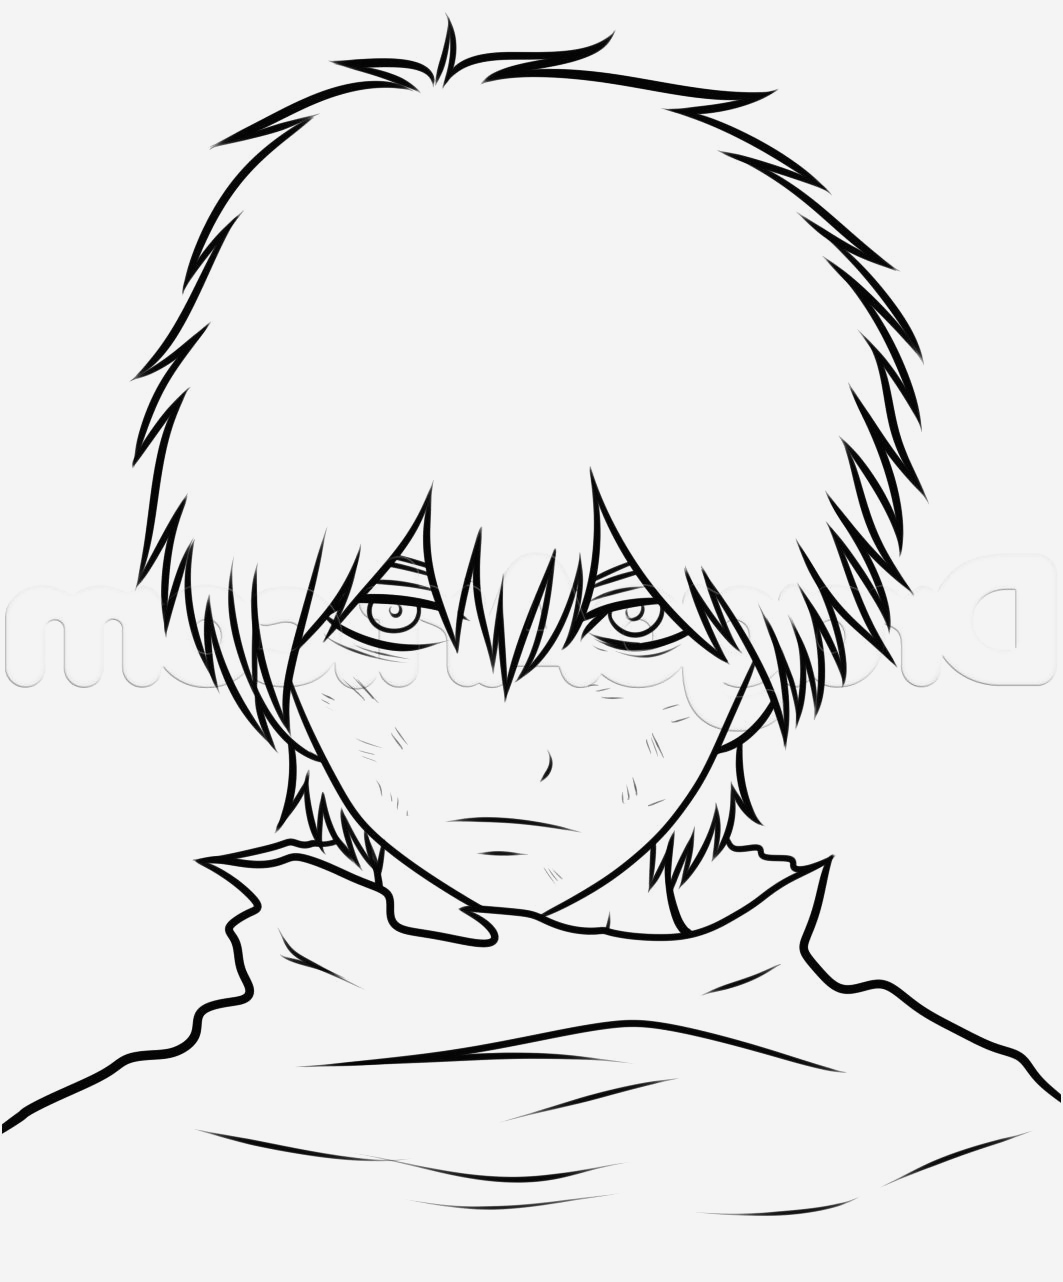 Coloriage My Hero Academia A Imprimer Best Of 10 Intelligent tokyo Ghoul Coloriage S Em 2020 Of Coloriage My Hero Academia A Imprimer